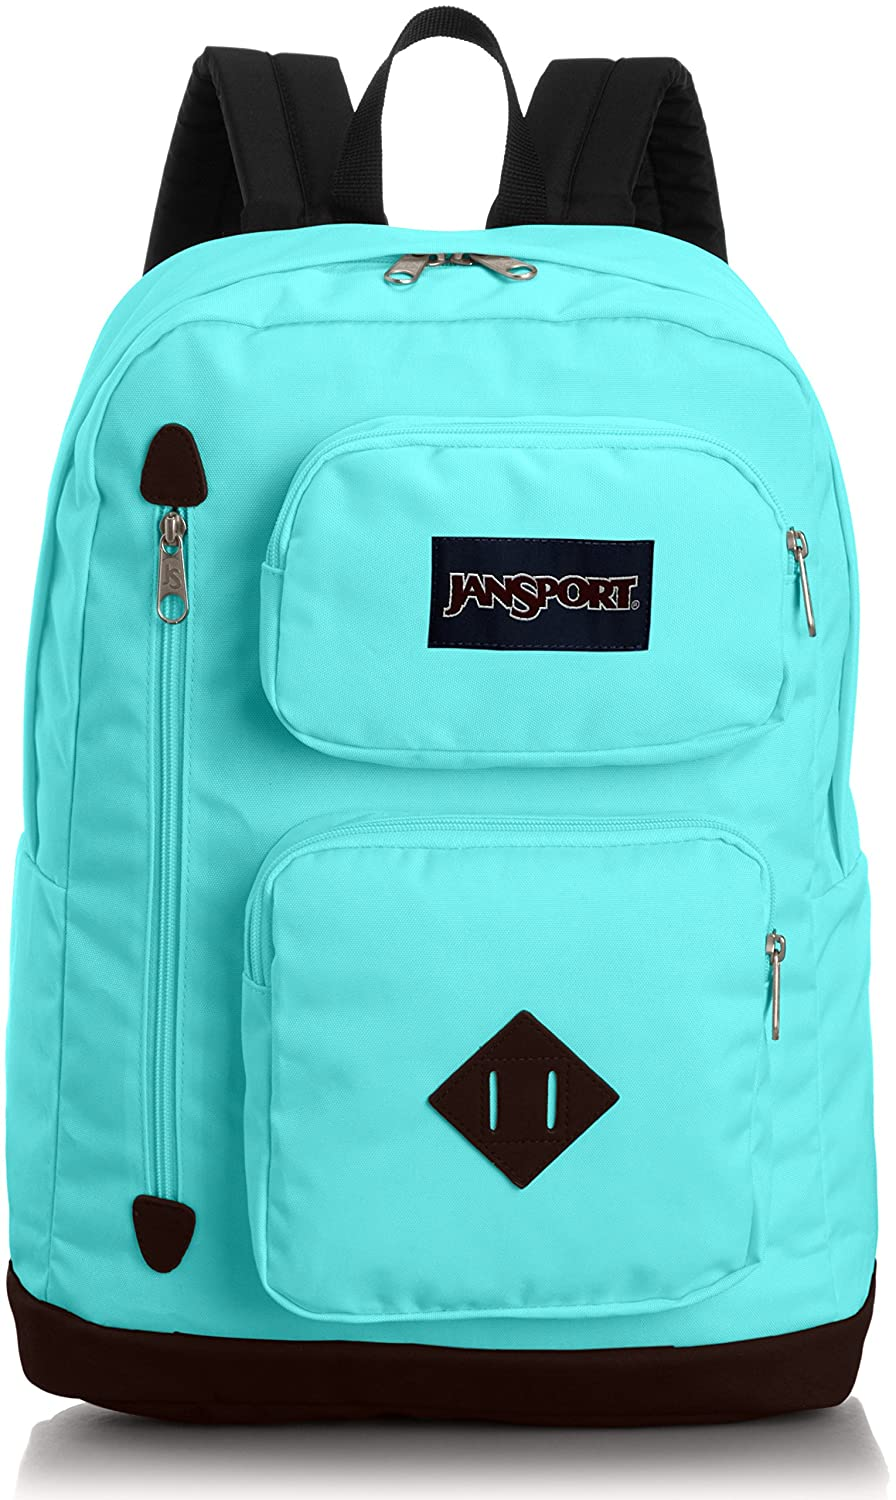 JanSport Austin Laptop Backpack